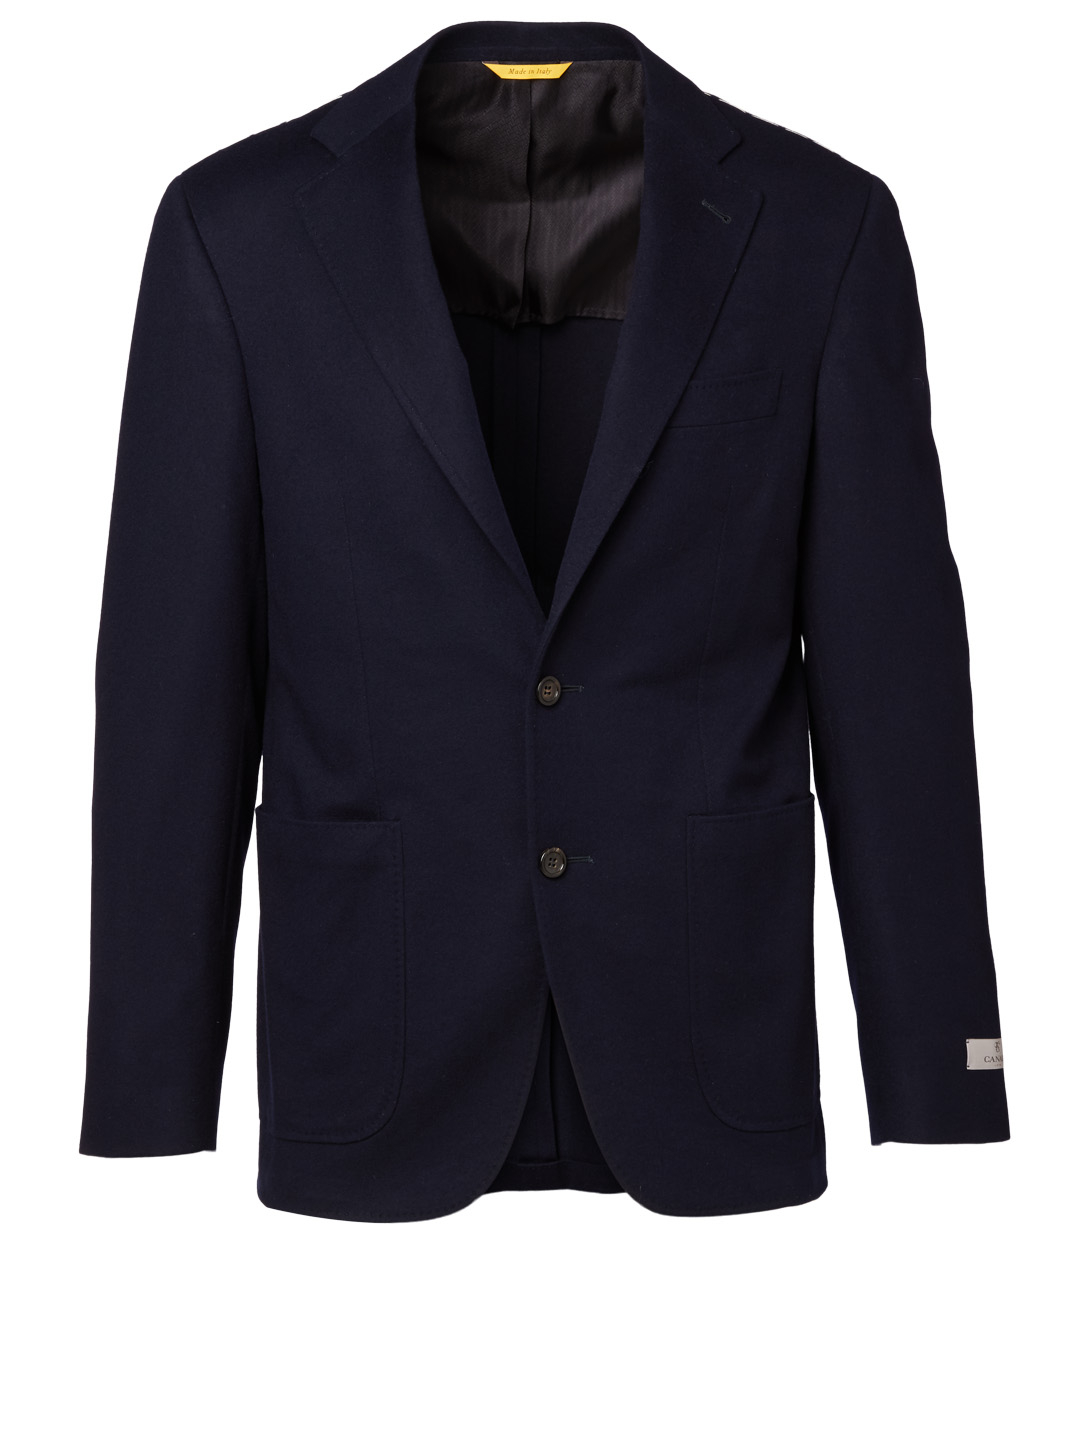 CANALI Wool Jacket Men's Blue